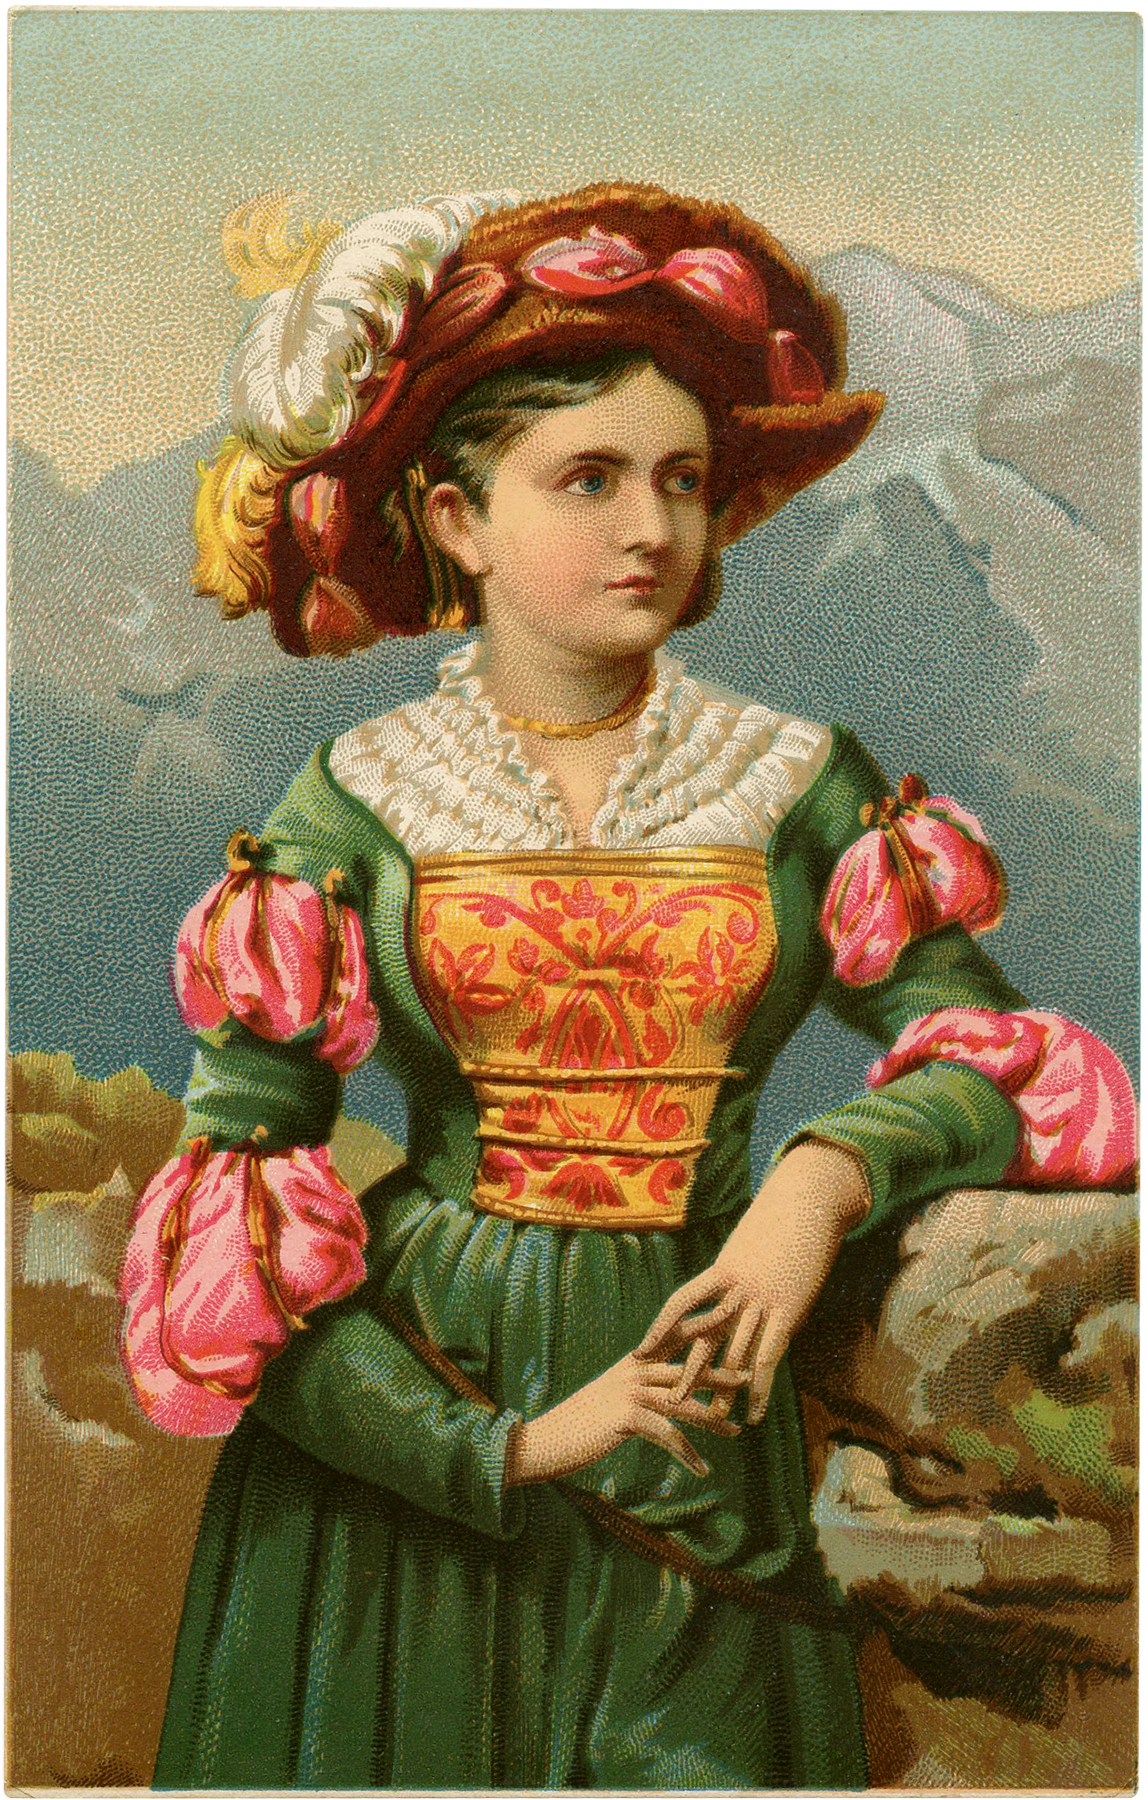 Girl with Medieval Costume Image